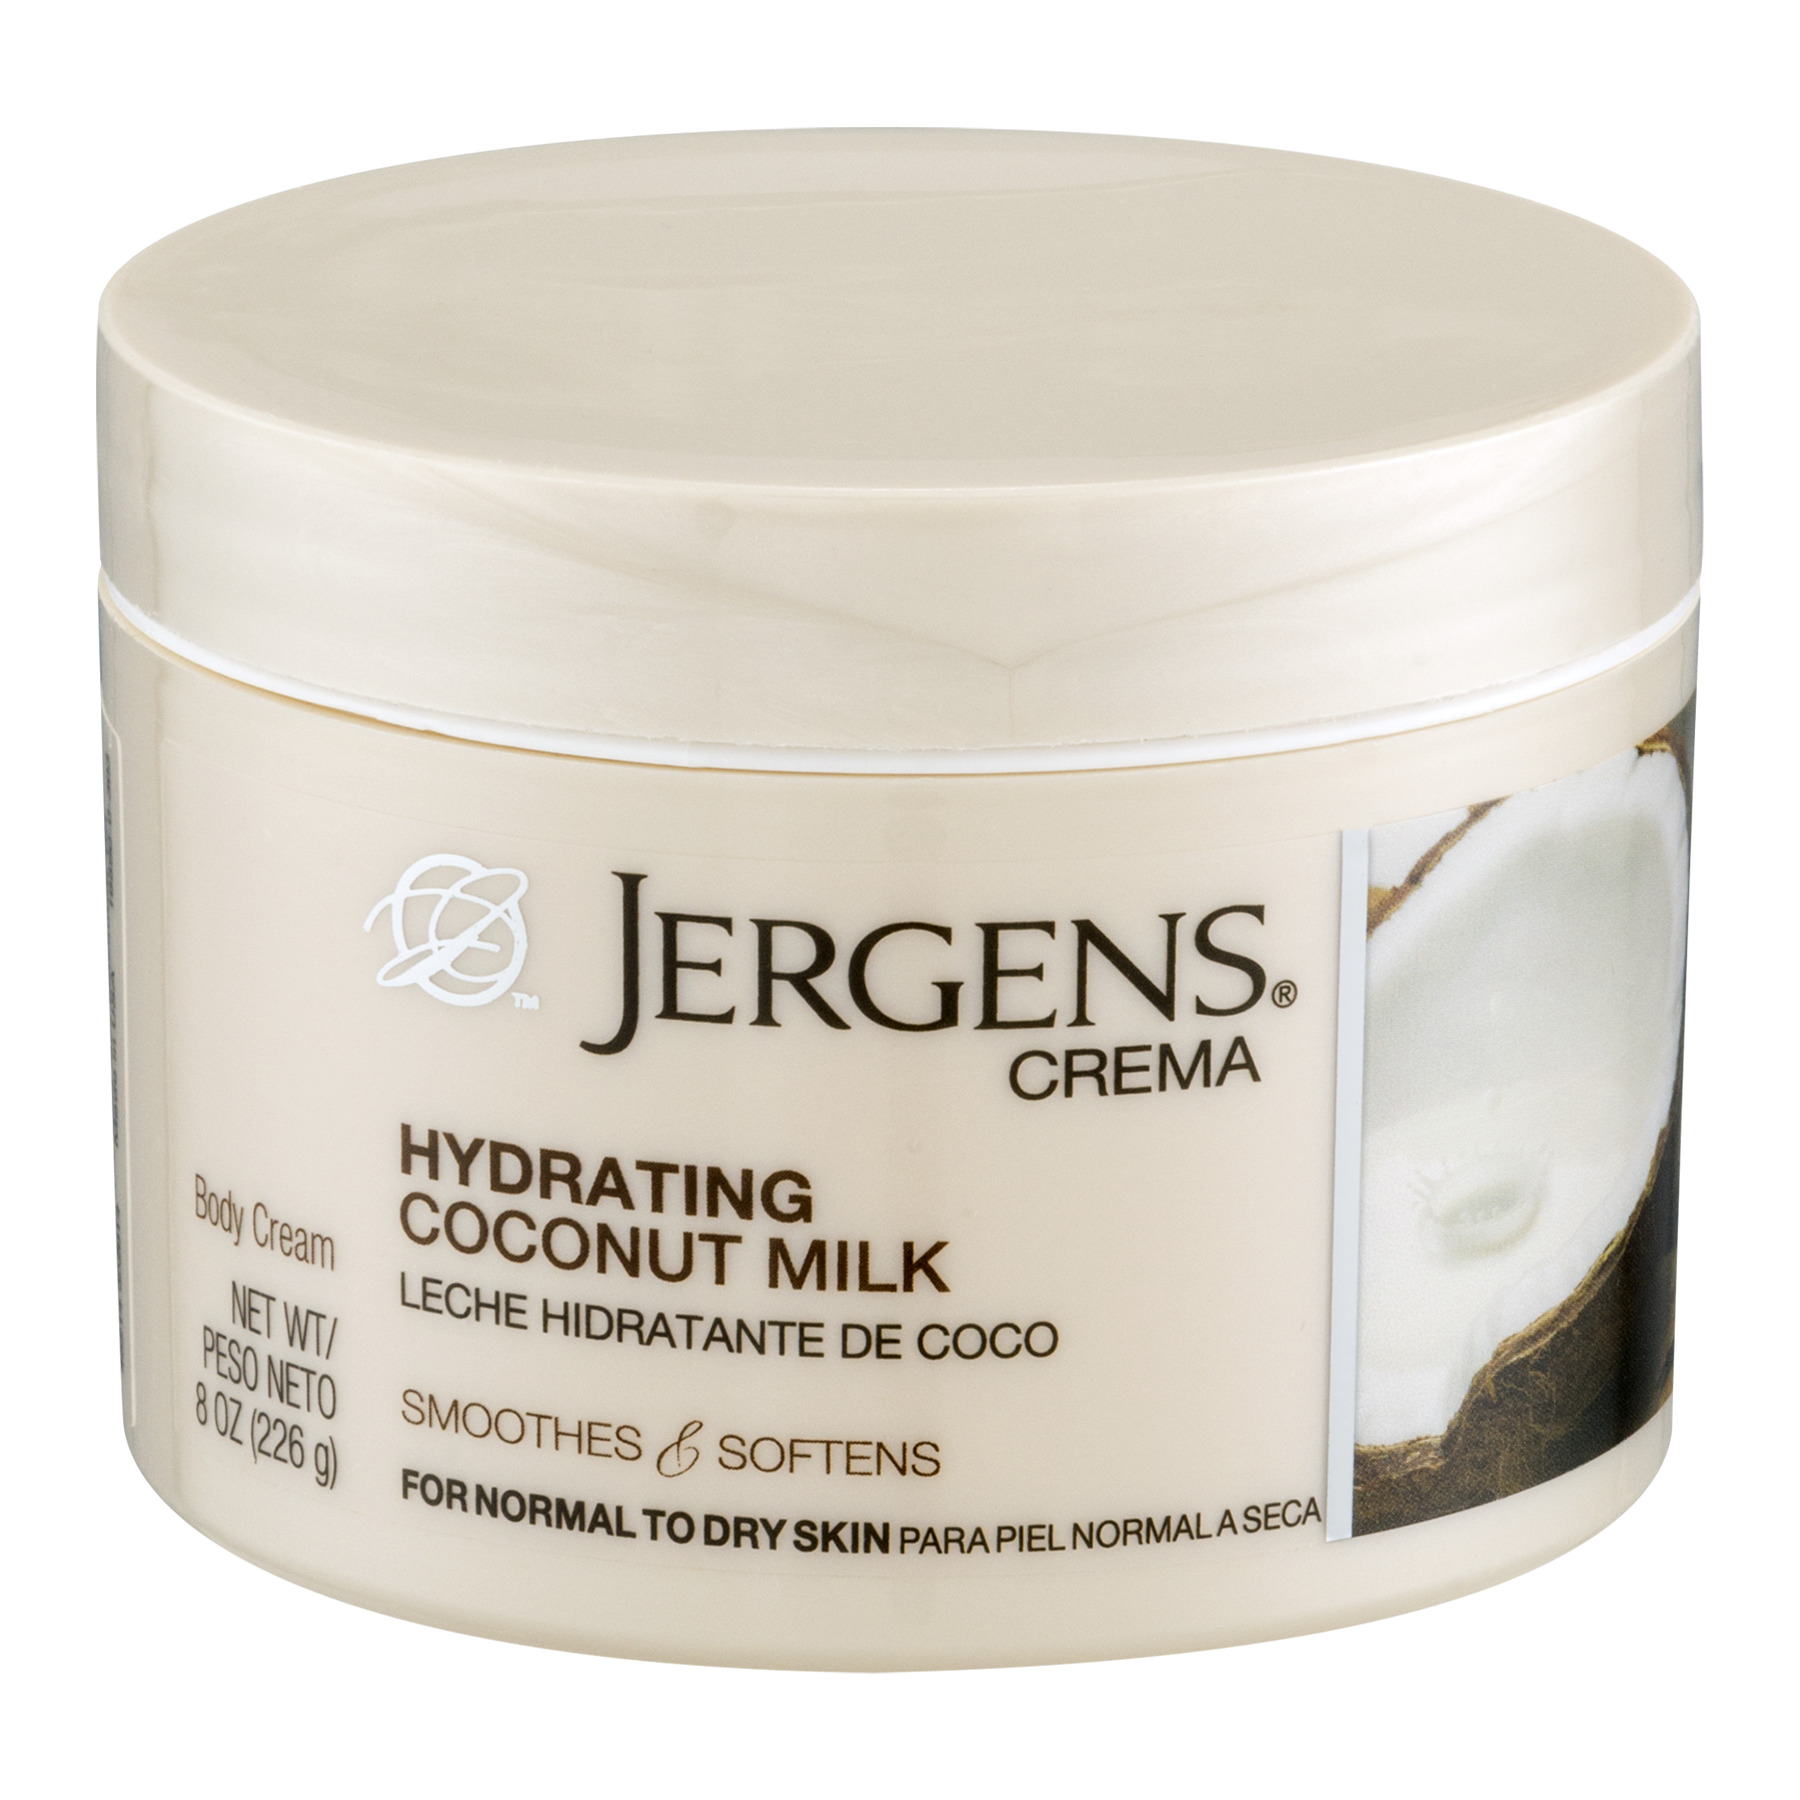 Jergens Crema Body Cream Hydrating Coconut Milk, 8.0 OZ